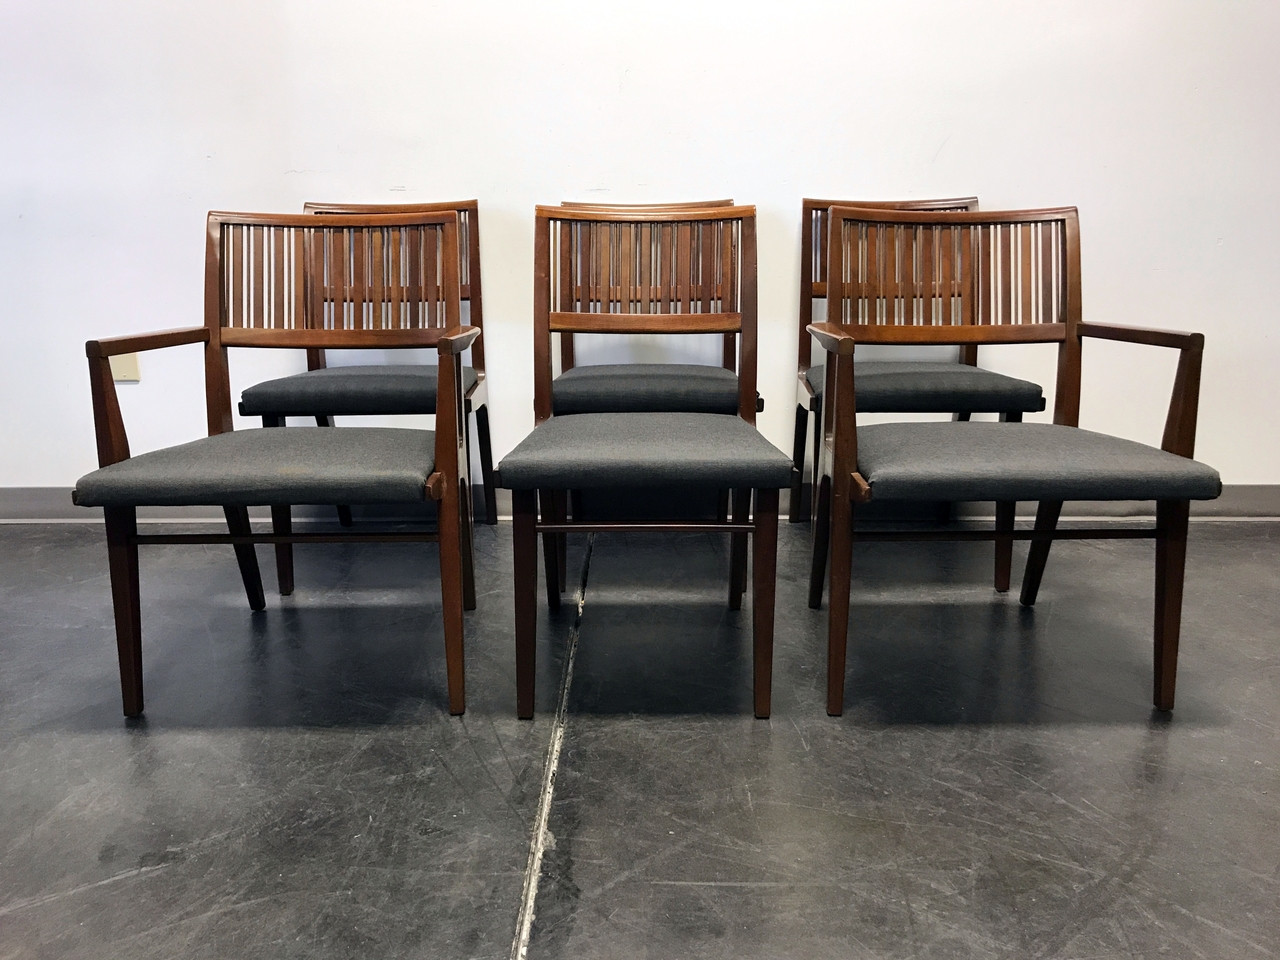 Sold Out Drexel Counterpoint Mid Century Modern Mahogany Dining